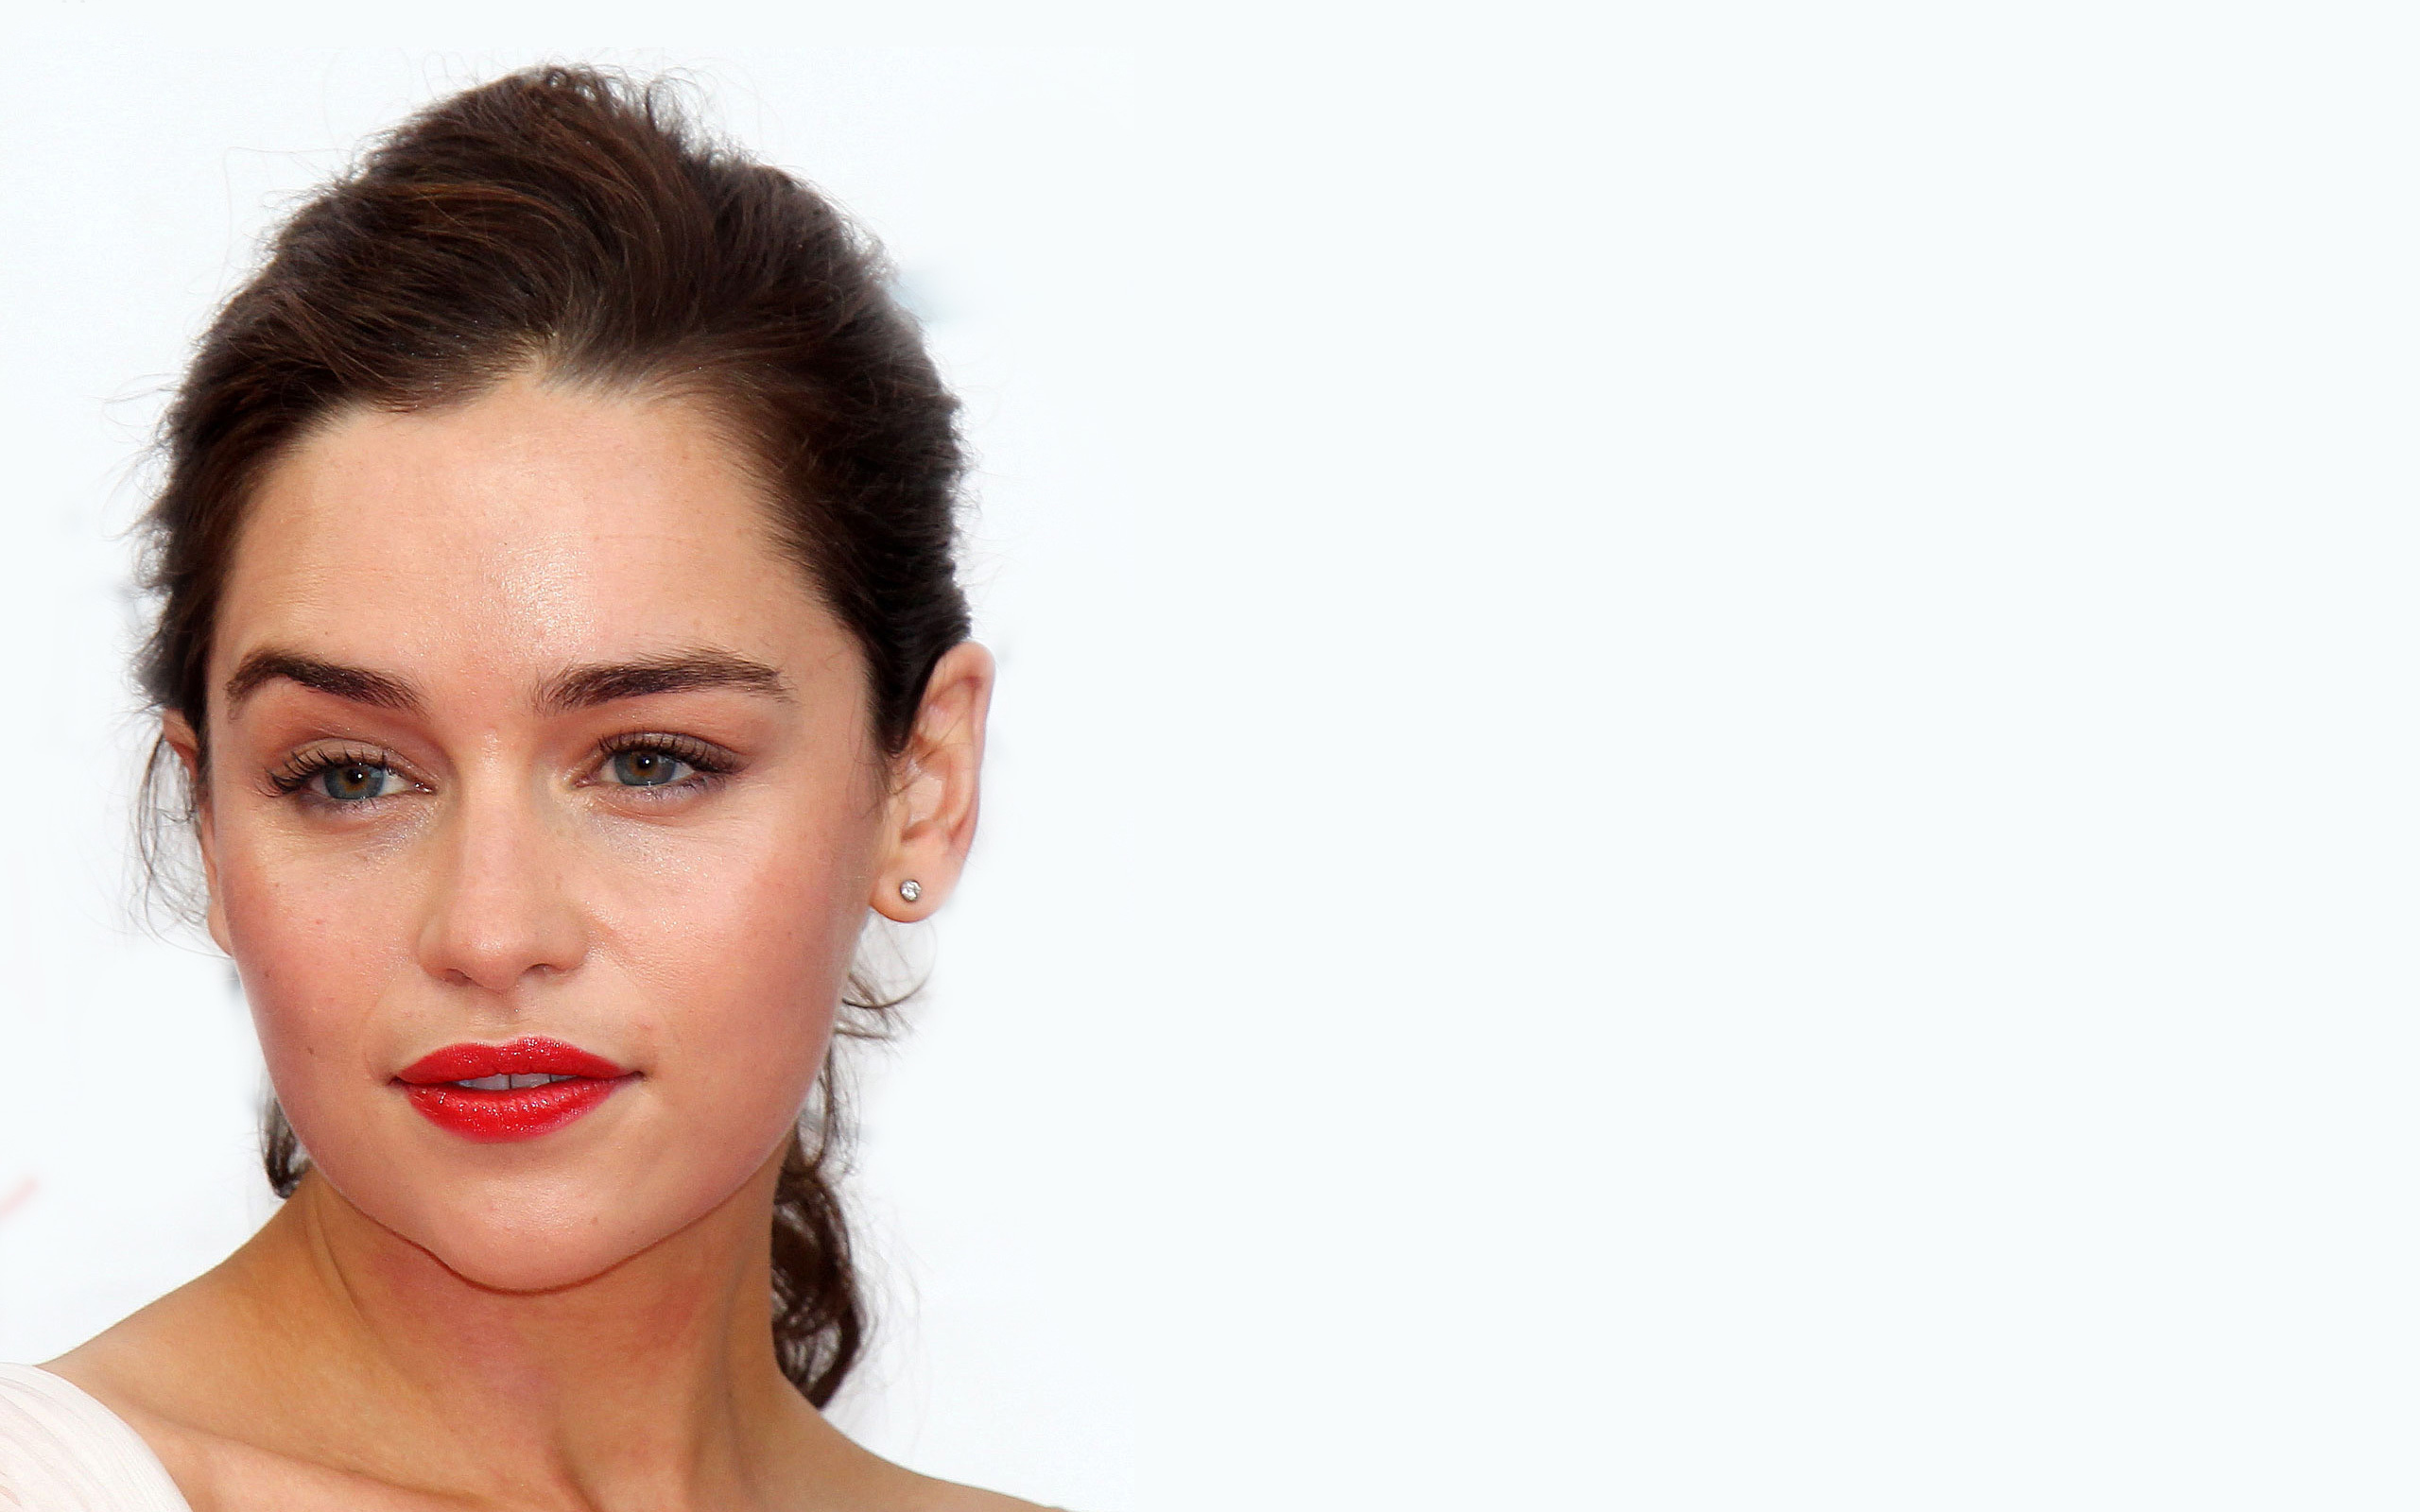 13 Awesome Pics of Game of Thrones Fame Emilia Clarke - PoPoBlog